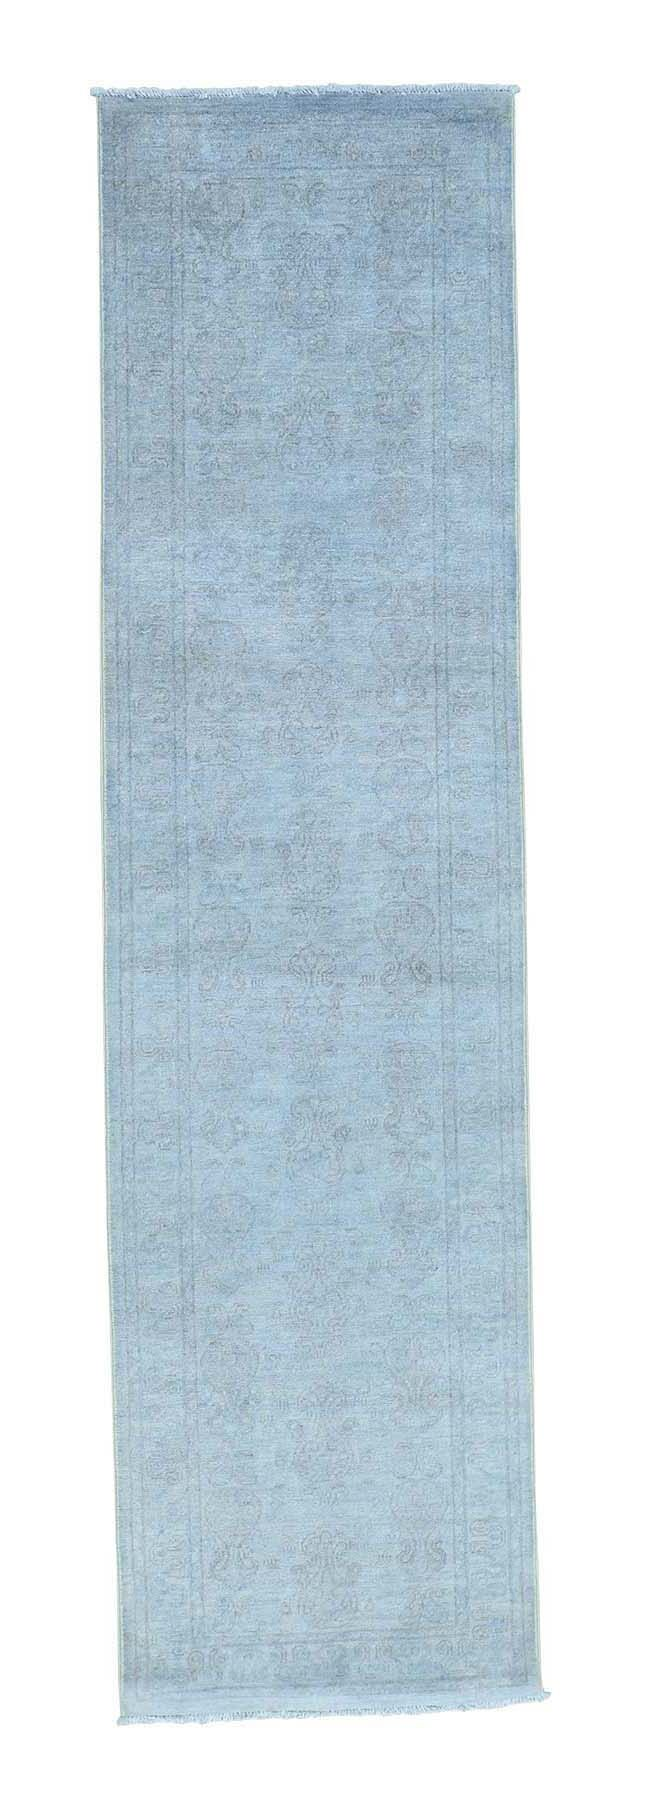 One-of-a-Kind Le Sirenuse Hand-Knotted Silver Blue Area Rug